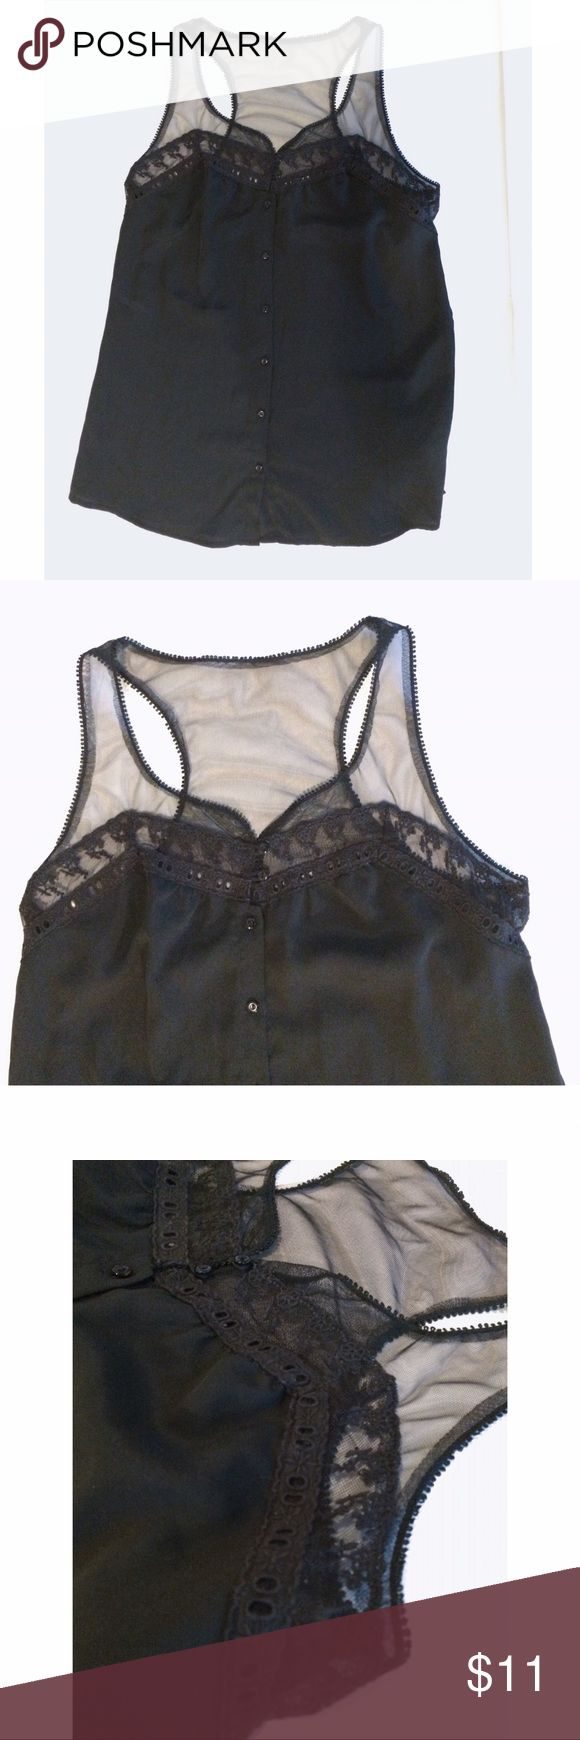 """Black Racer Back F21 Lace Top Sleeveless S Black Racer Back Lace Top Sleeveless size small. Excellent condition. Looks cute tucked in, left out, and even bottom 3 buttons undone and tie the front for a more flirty style.  16"""" U to U and 25"""" length. Tops"""